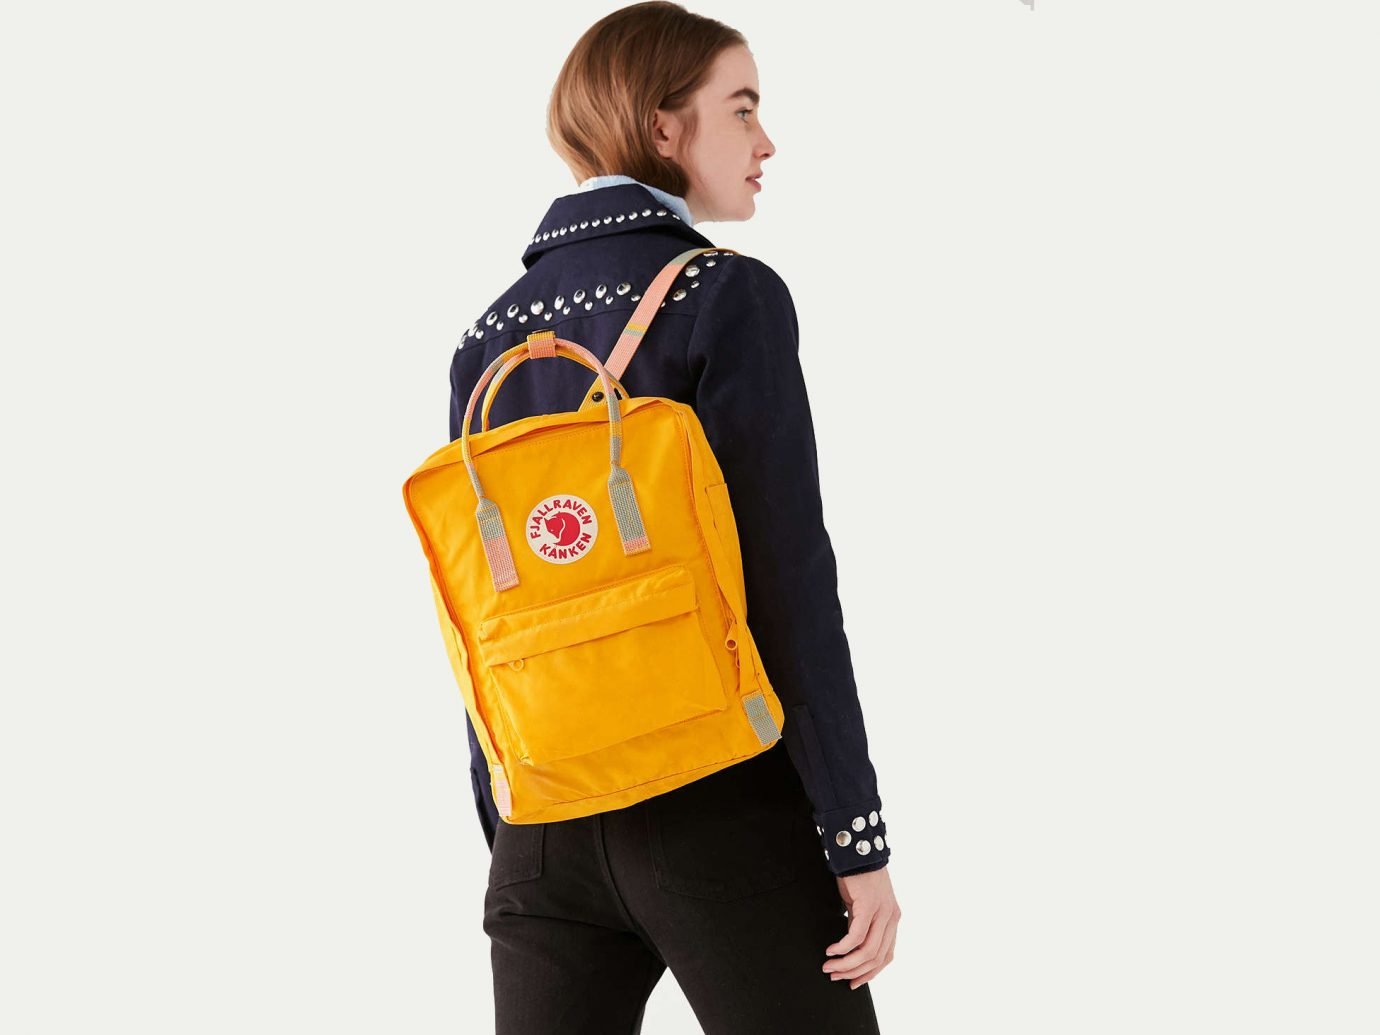 Travel Shop person yellow bag shoulder jacket outerwear product sleeve joint neck